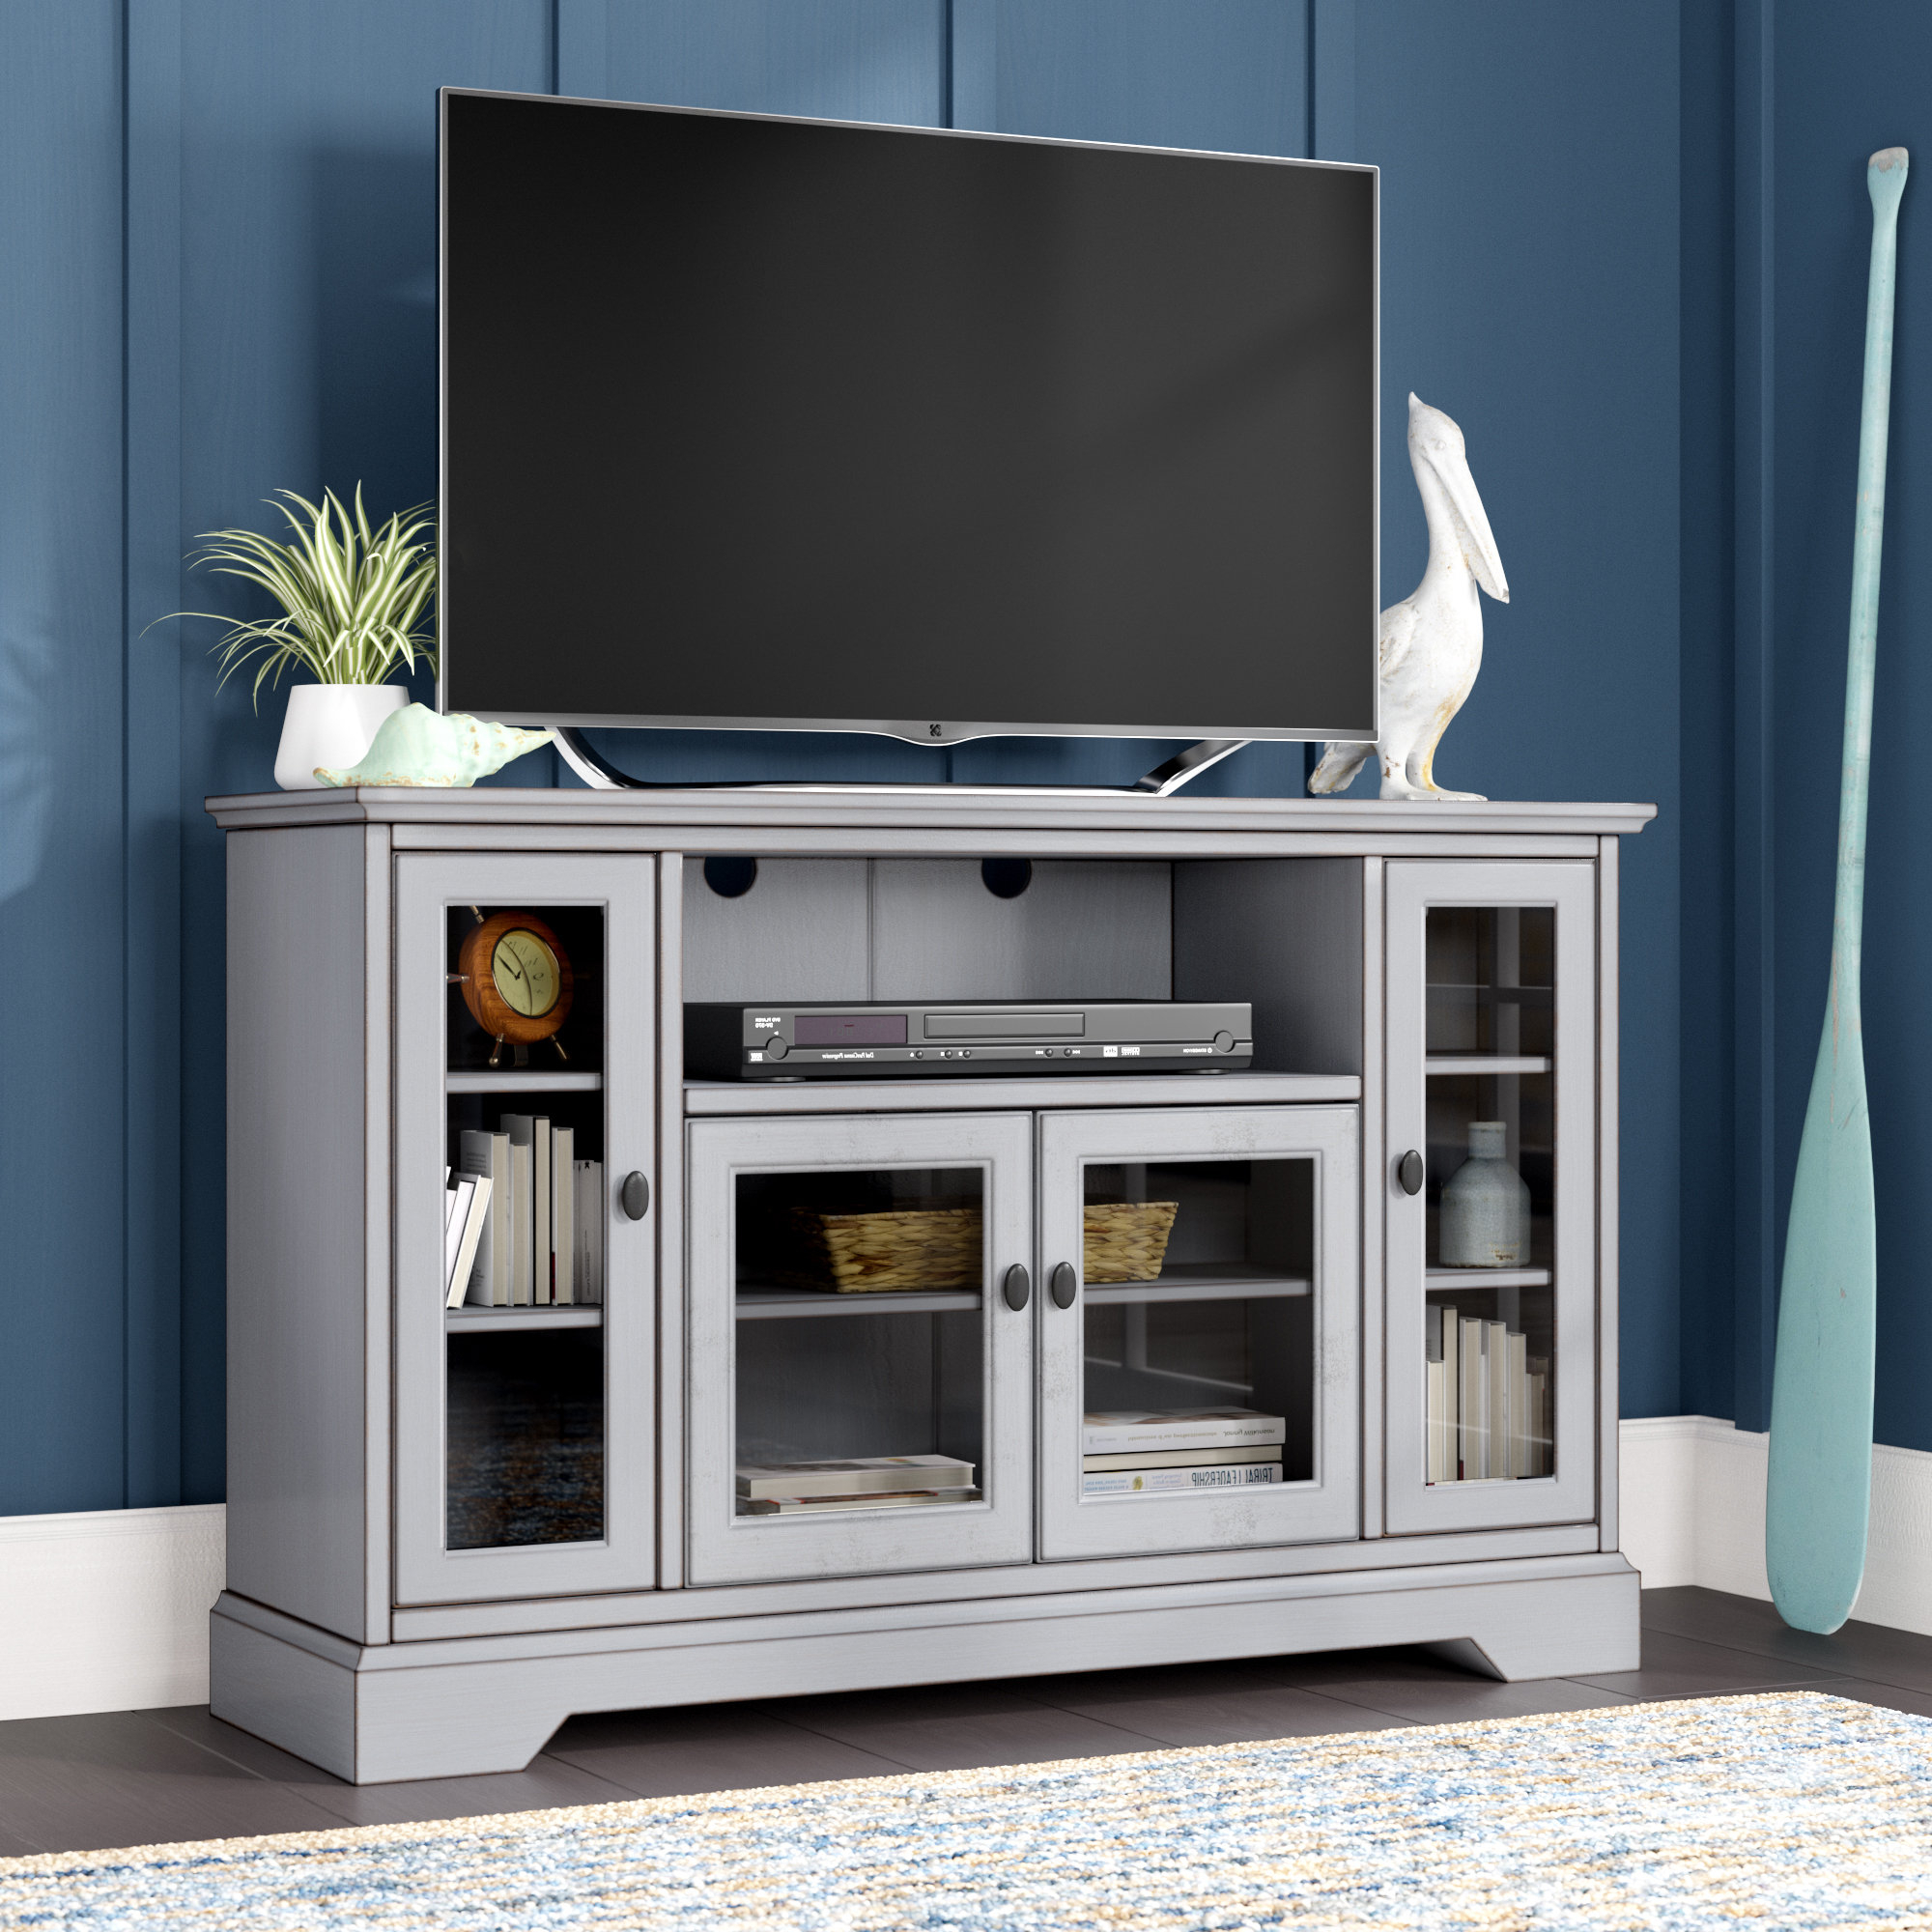 Tall Tv Stands You'll Love | Wayfair In Canyon 64 Inch Tv Stands (View 11 of 20)